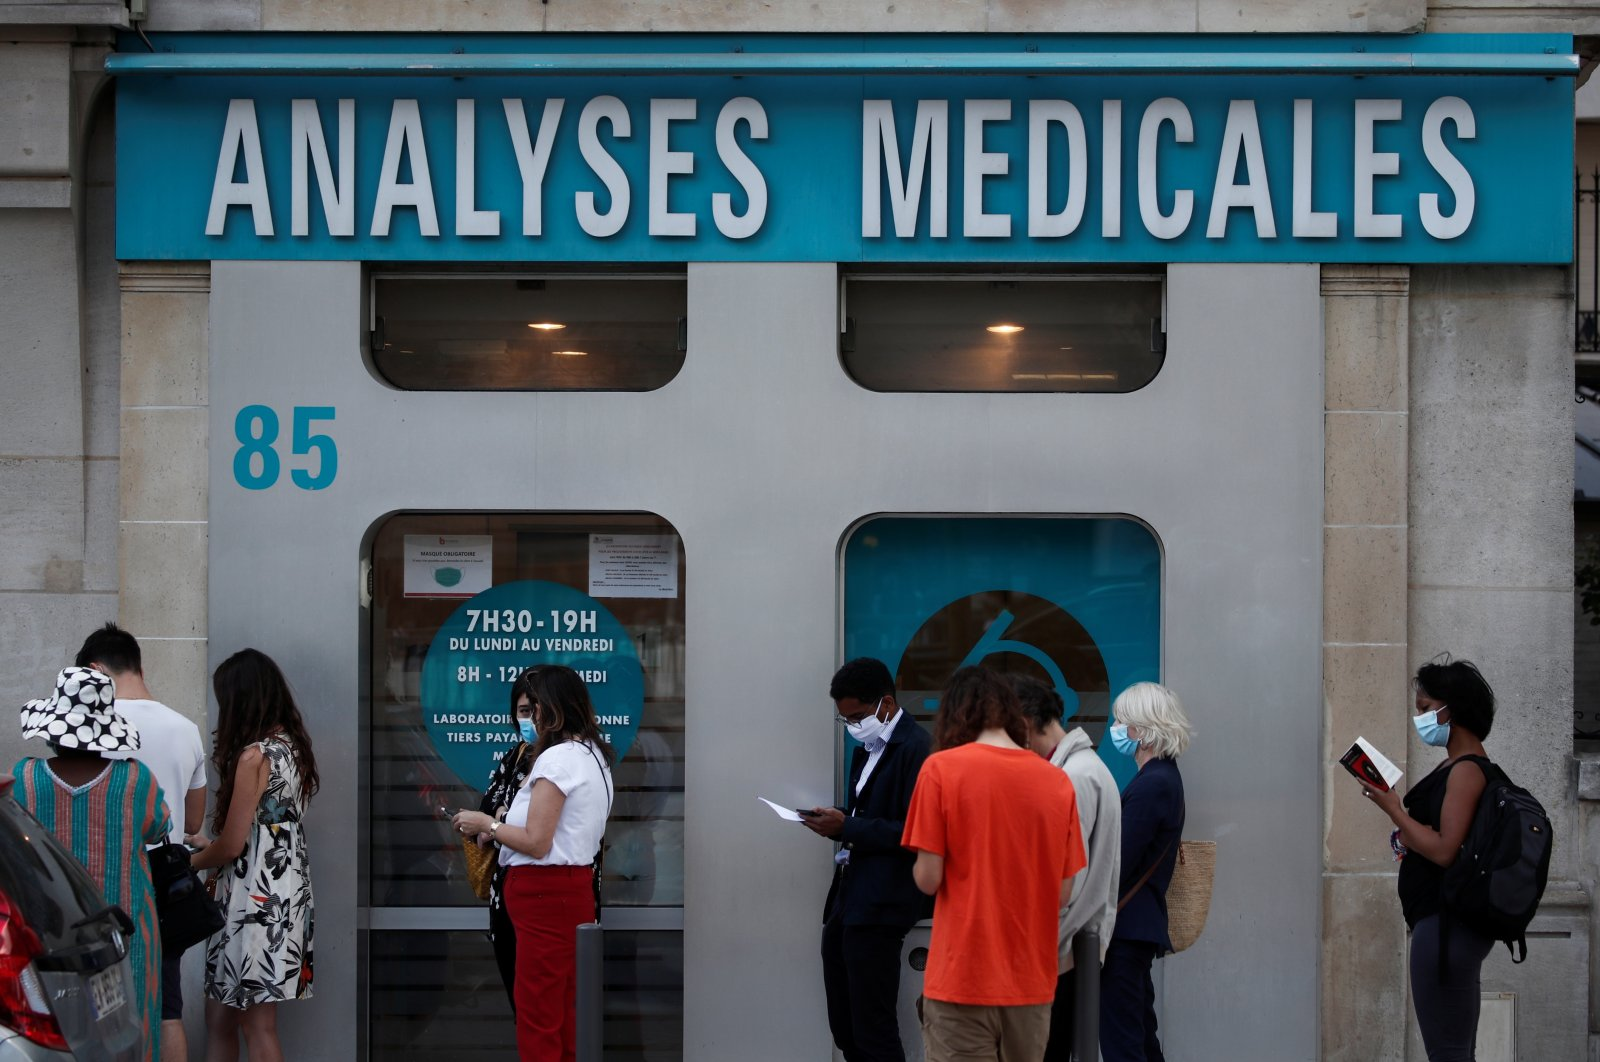 People queue to enter a laboratory to get tested for COVID-19, Paris, France, Aug. 4, 2020. (Reuters Photo)